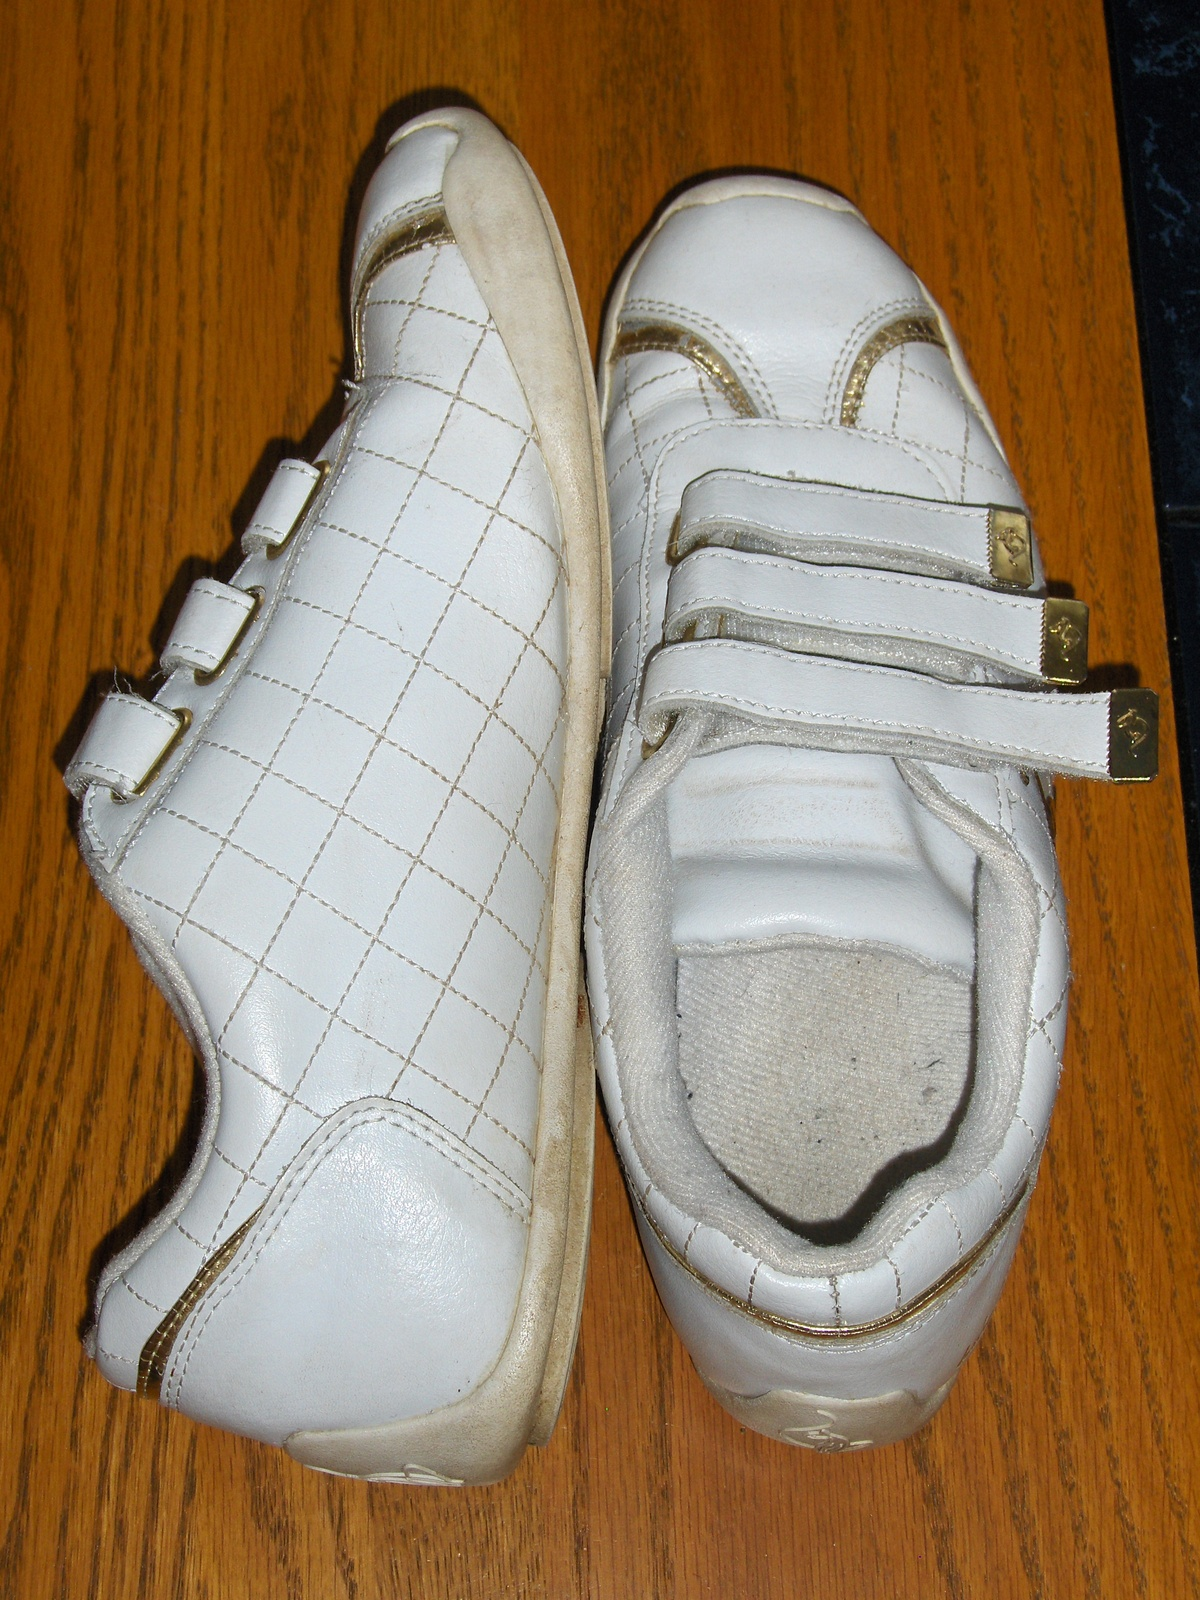 Baby Phat White Leather Tennis Shoes 9 Gold Tone Cat Detail Velcro Straps GZS391